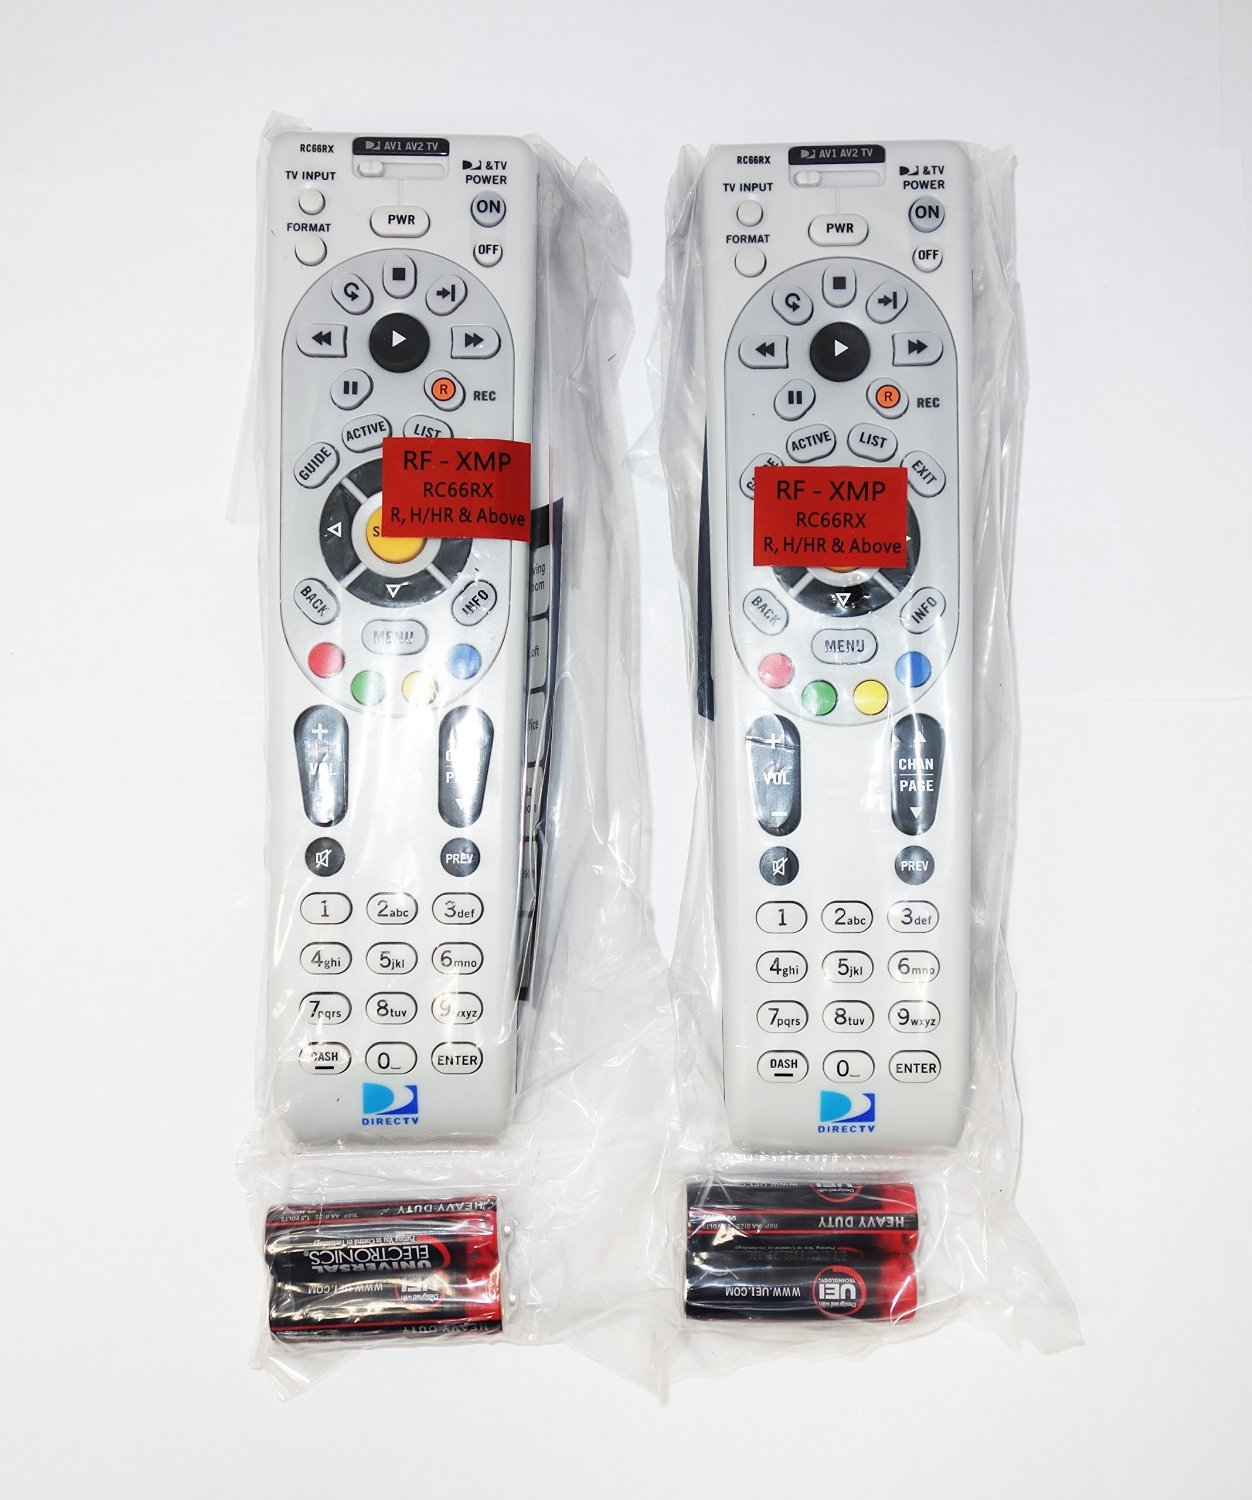 Amazon 2 pack directv ir rf universal remote control amazon 2 pack directv ir rf universal remote control rc66rx home audio theater sciox Gallery